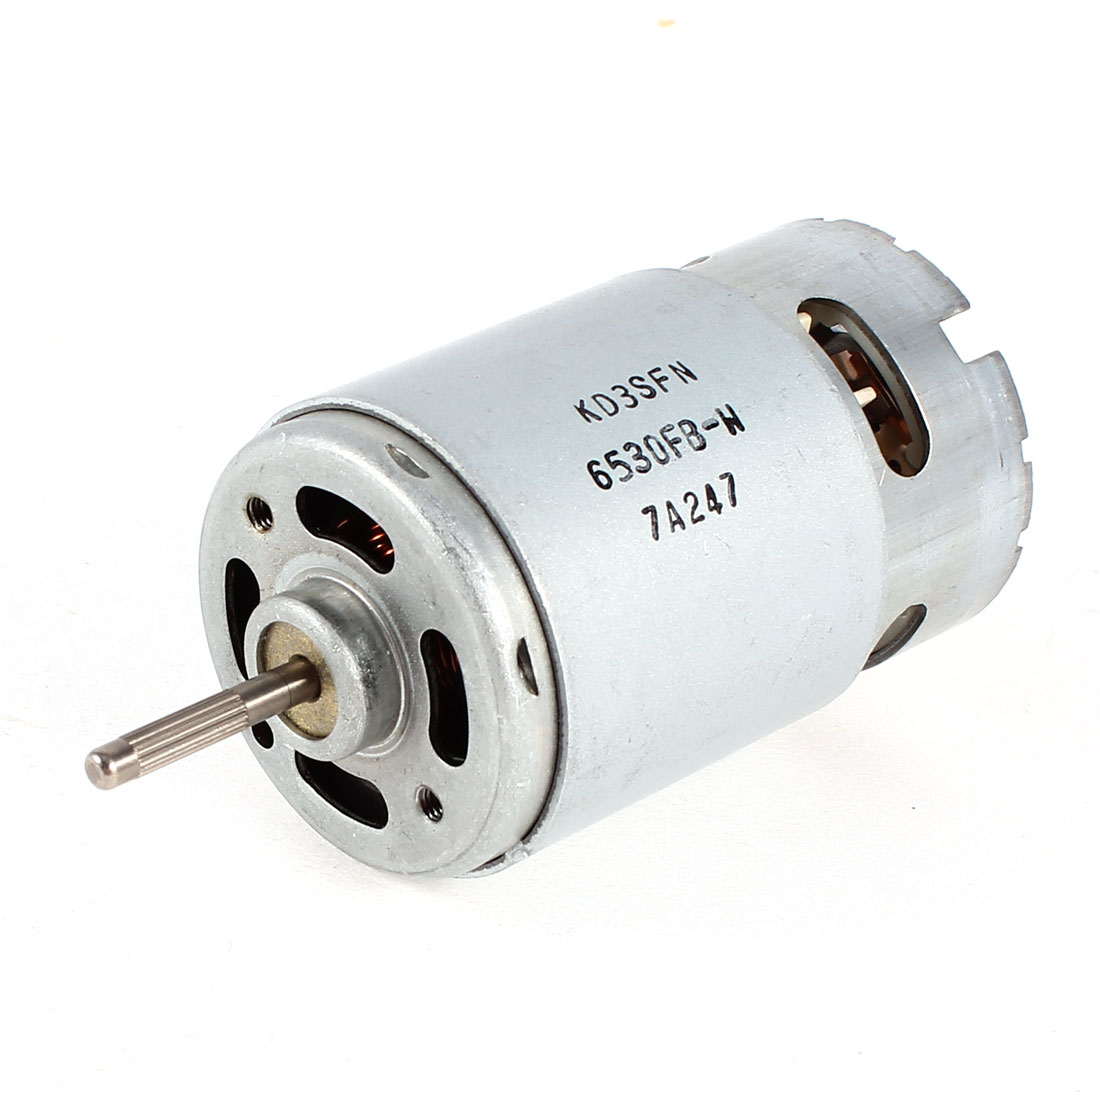 DC 3V-12V 3750RPM-15000RPM High Speed Cylinder Shaped Miniature Electric Motor